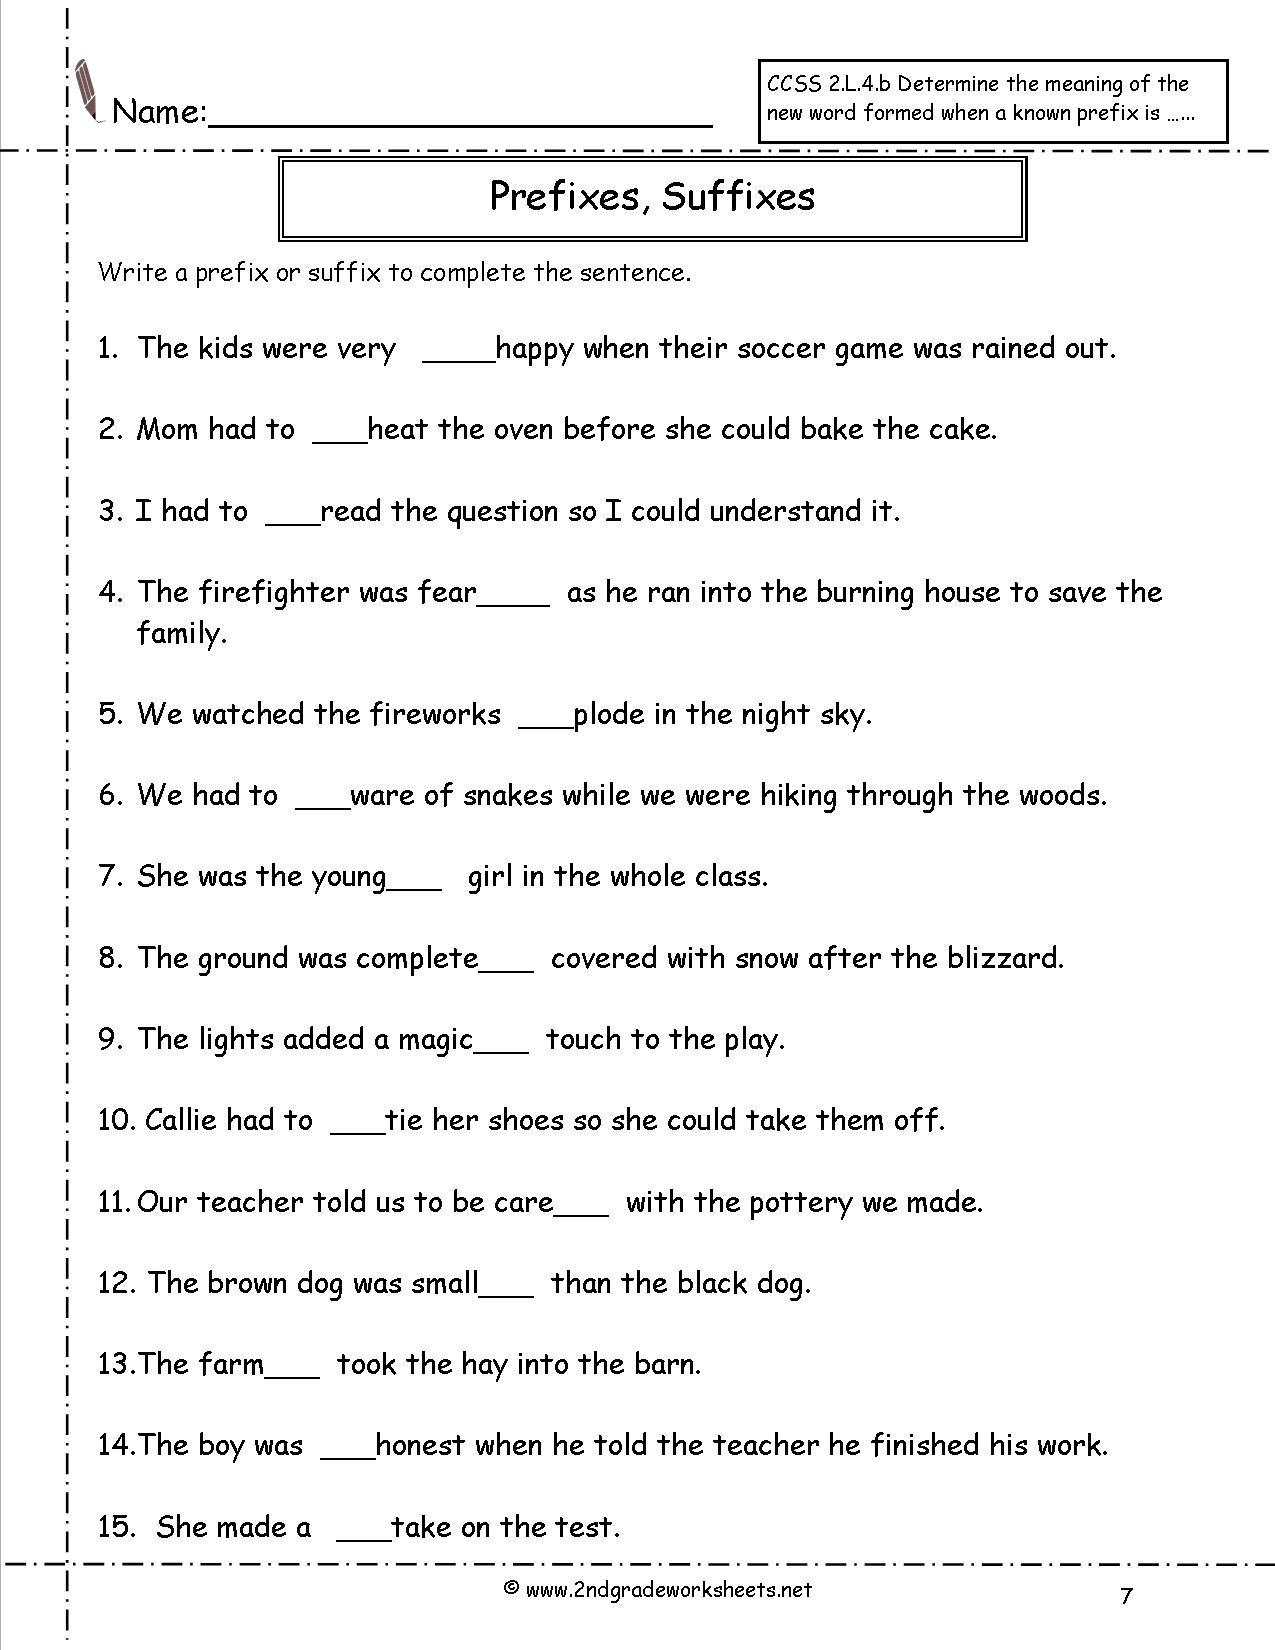 Prefixes Worksheet 2nd Grade Adding and Subtracting Integers Games Math Practice